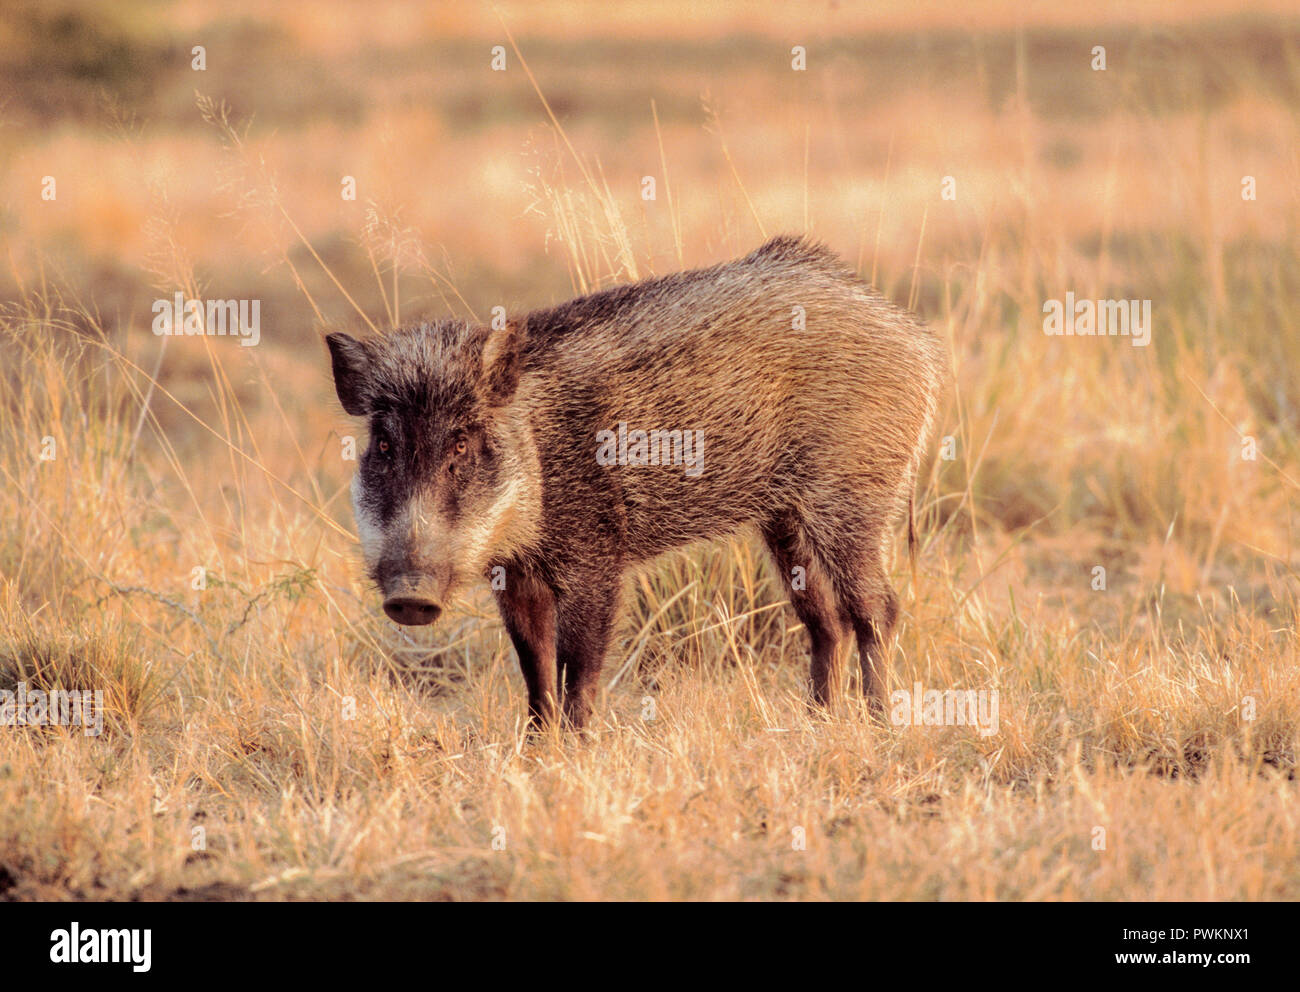 male Indian Wild Boar, Sus scrofa cristatus, in grasslands, Velavadar National Park, Gujarat, India Stock Photo